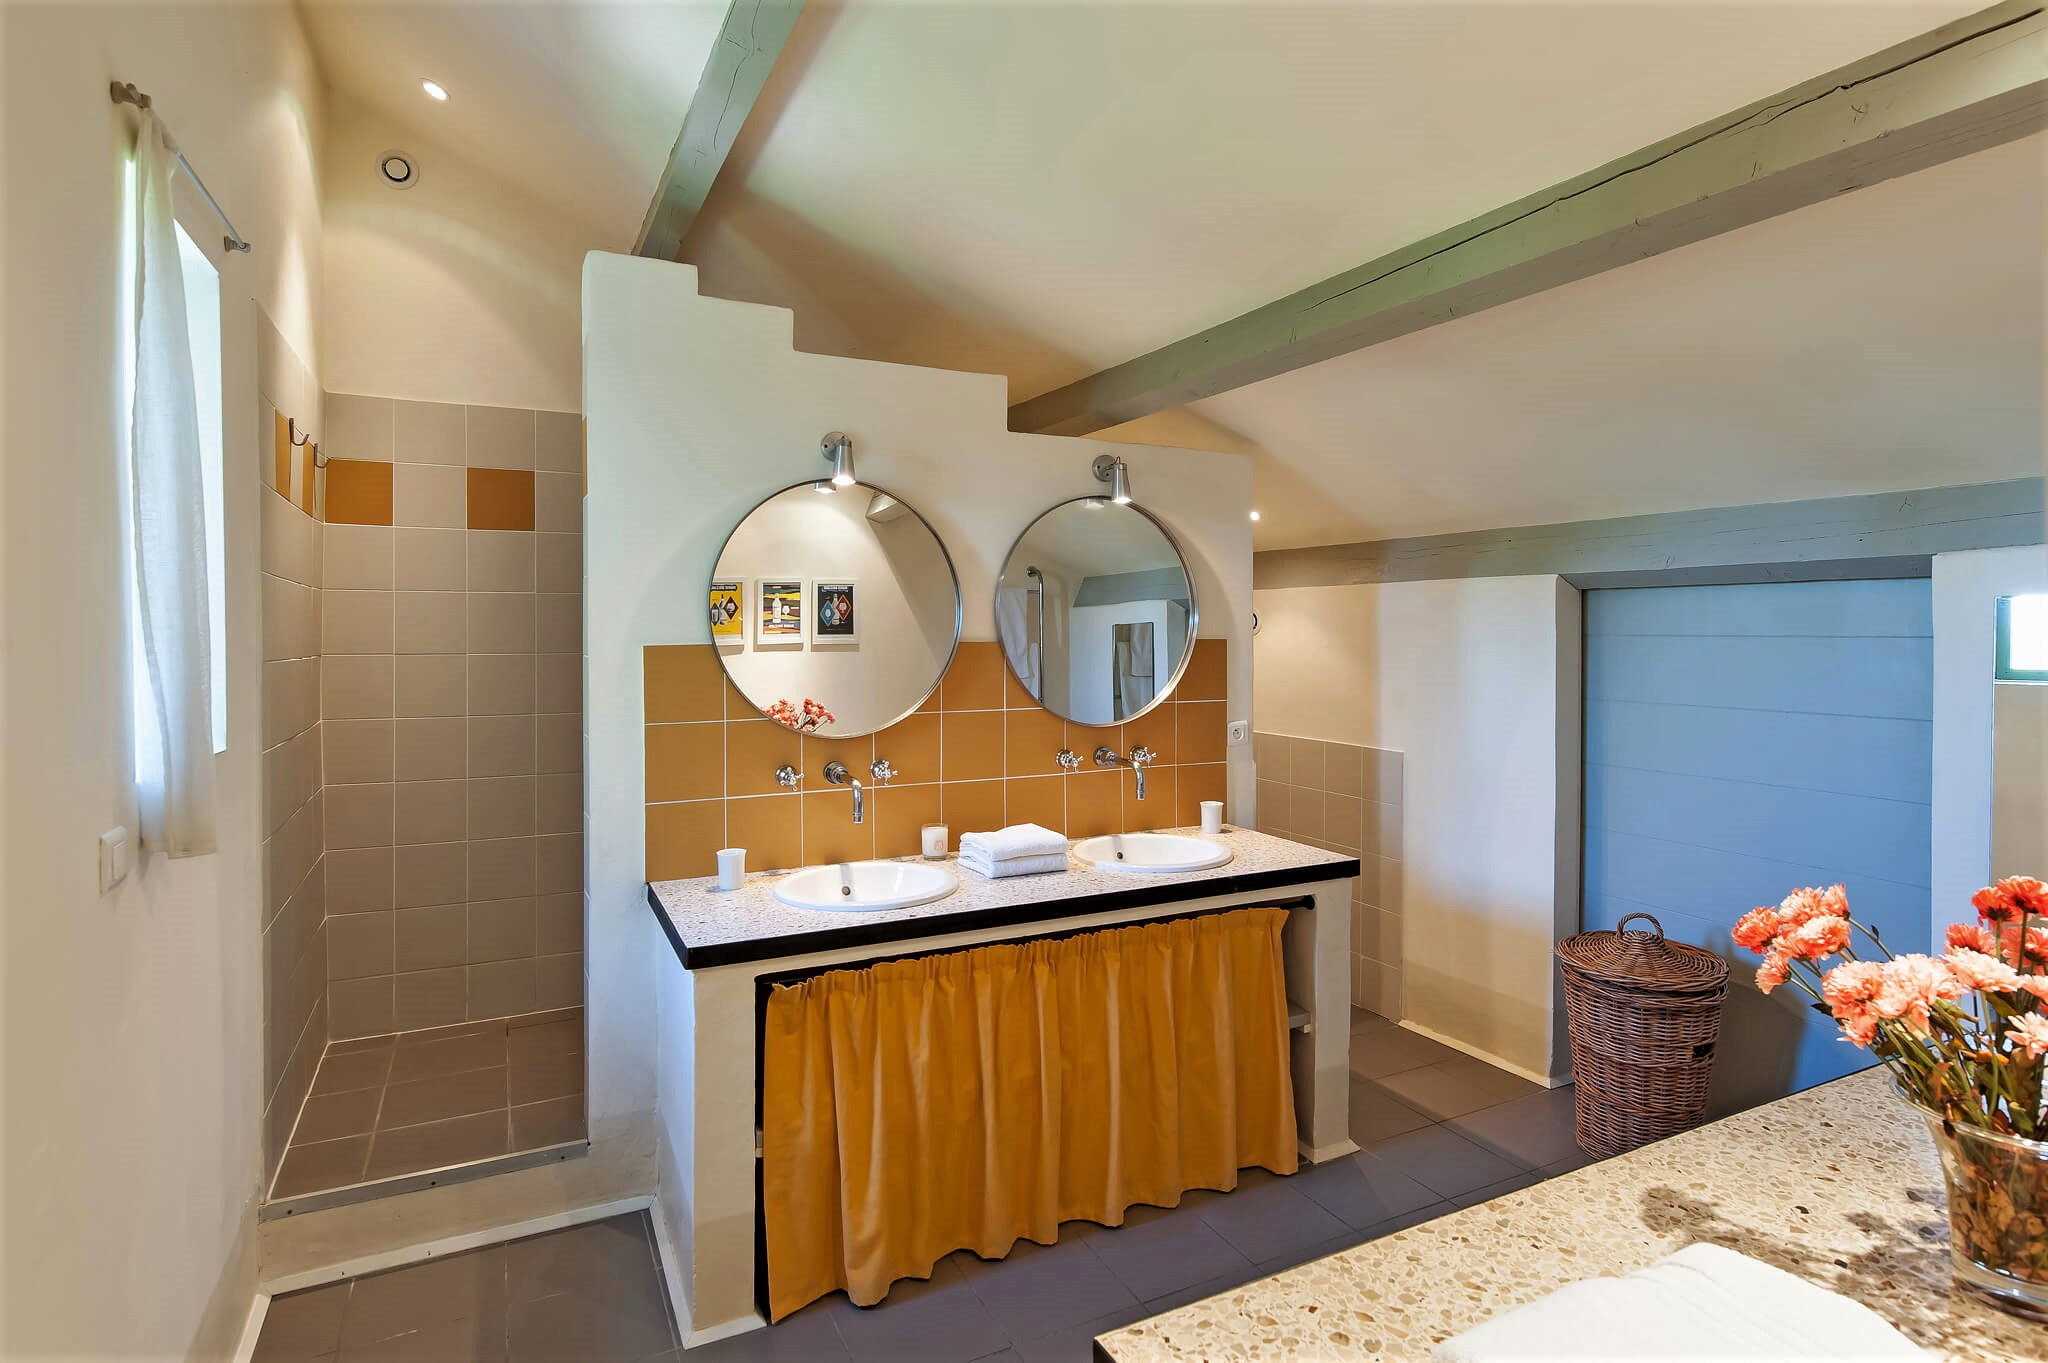 cai3-17jh-33-bathroom1.jpg